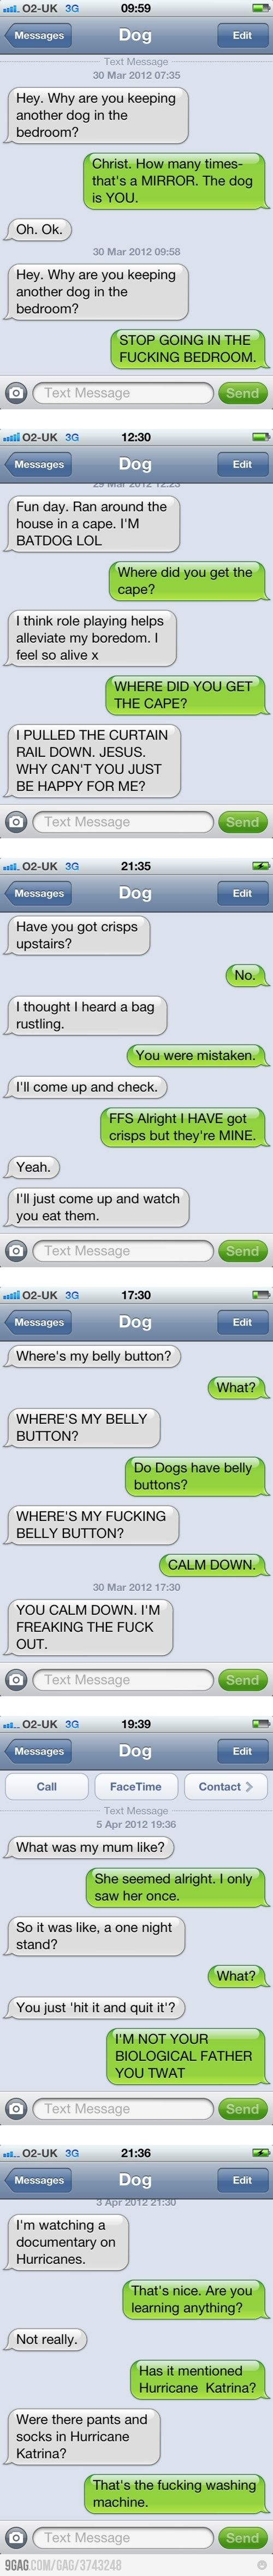 Text message from dog: